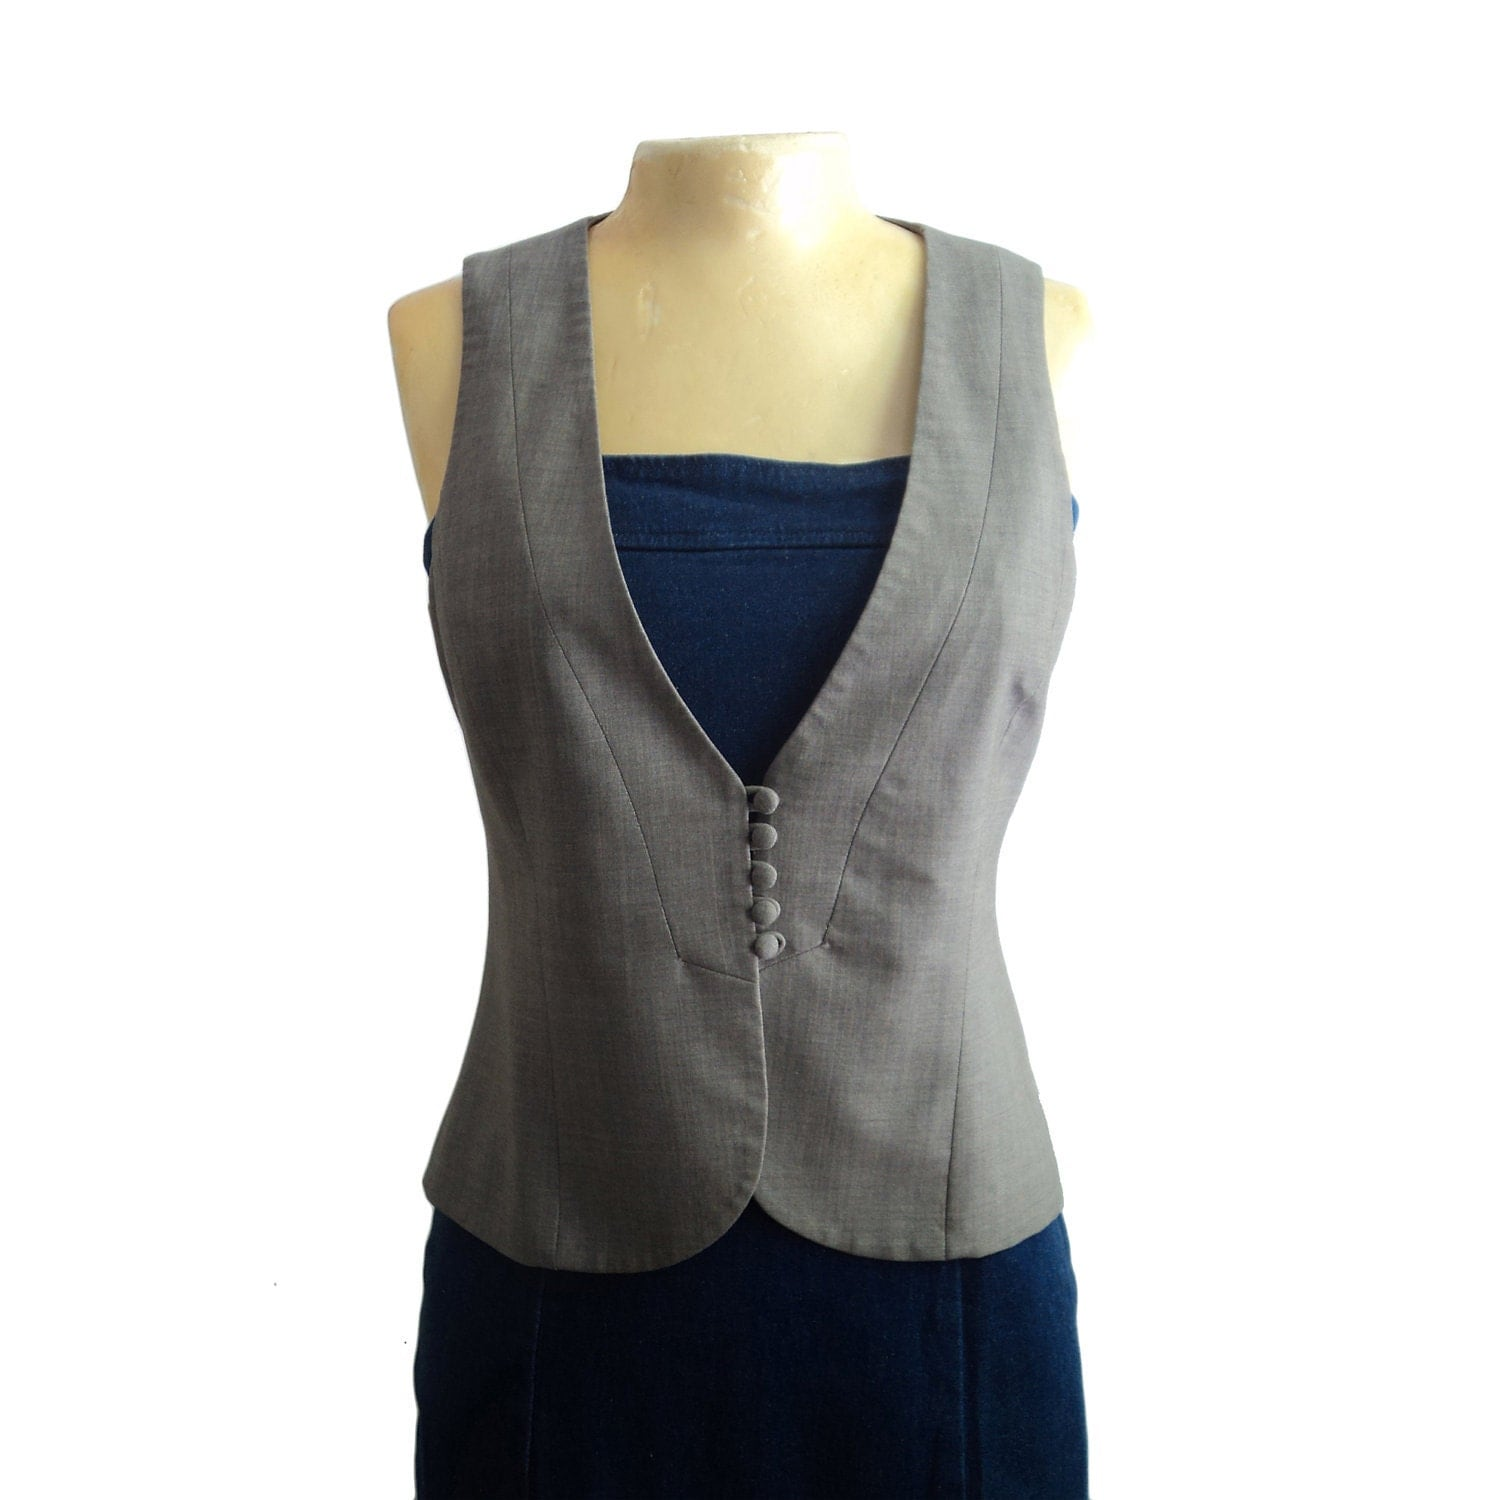 Vintage Minimal Theory Menswear Inspired Warm Gray Wool Vest, Fitted, Haberdashery, Size Small 4 - sartorialistas